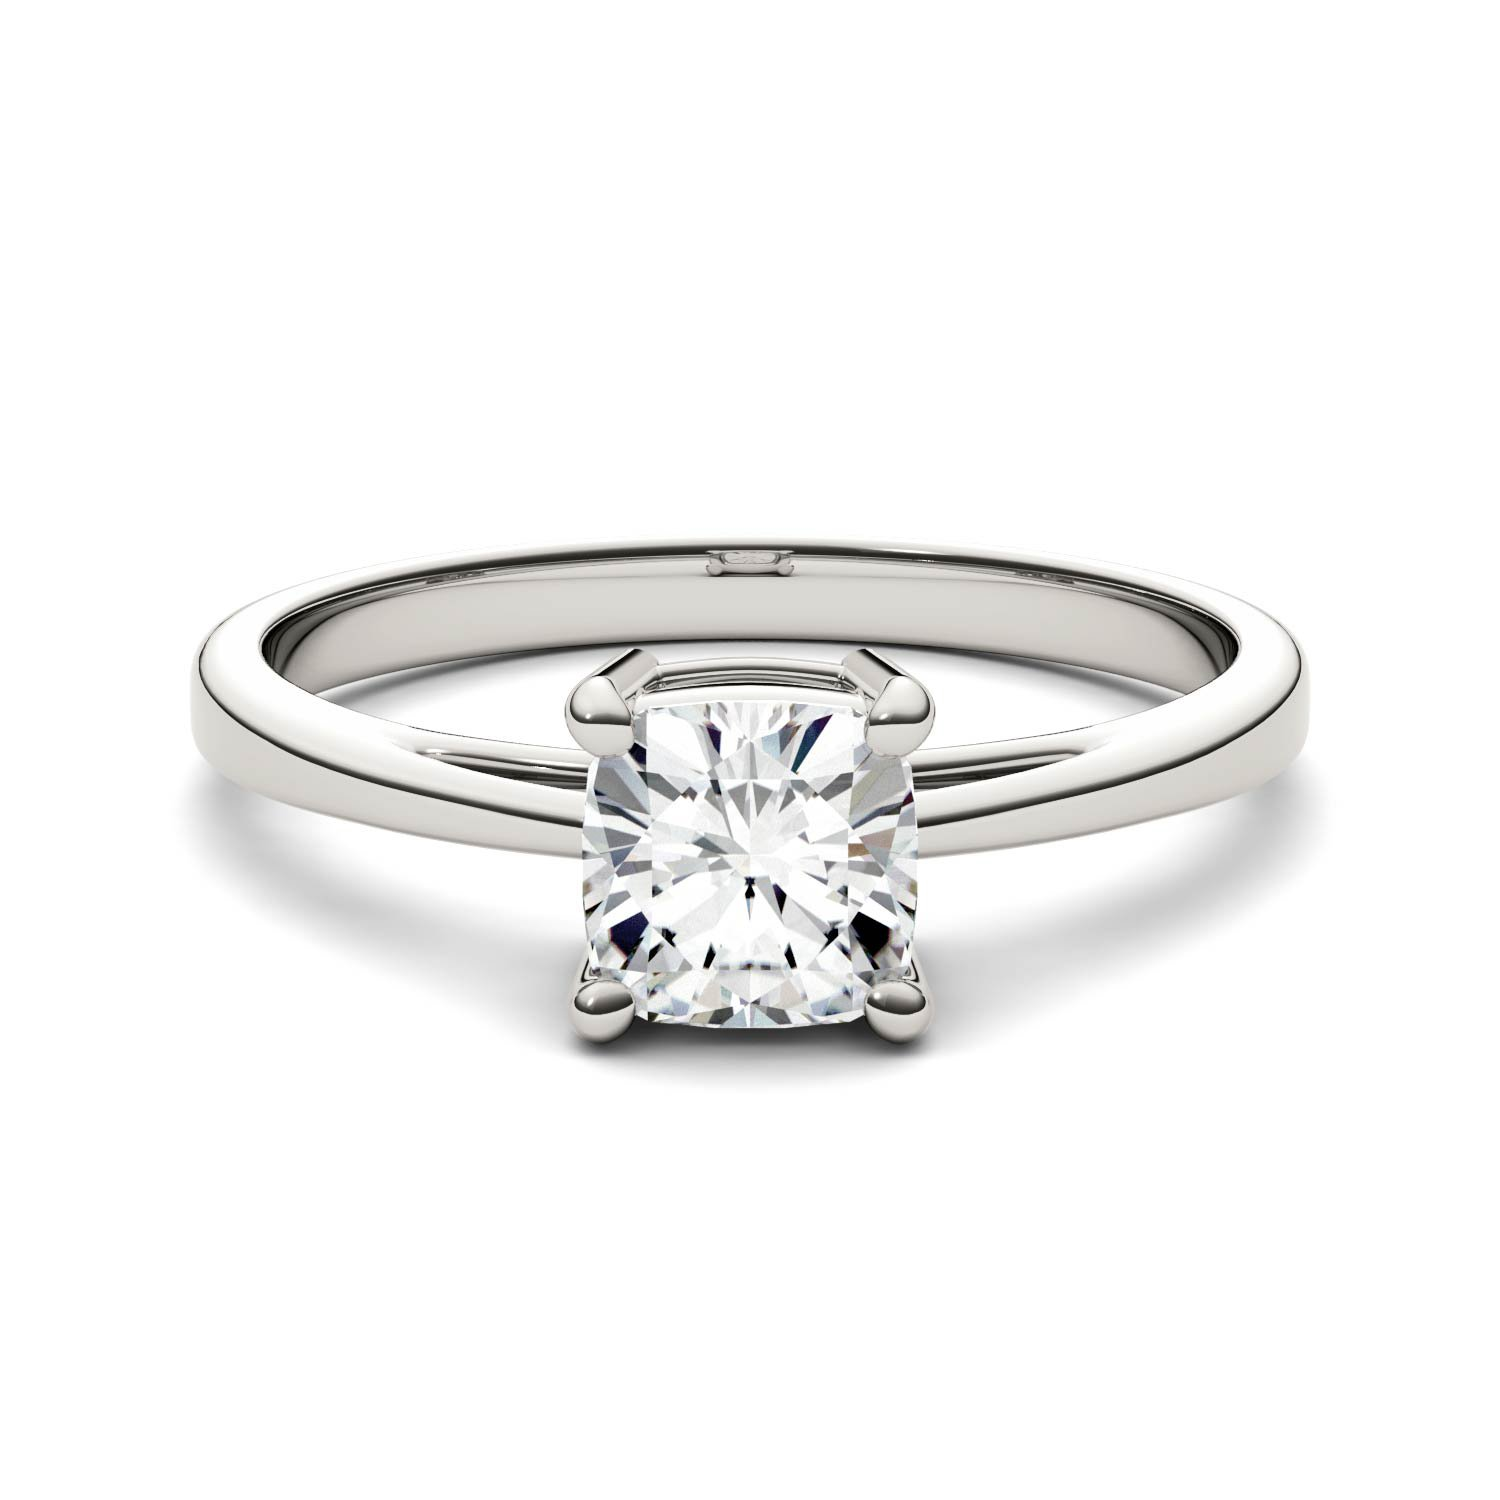 Forever One Cushion 6.0mm Moissanite Engagement Ring-size 7, 1.10ct DEW (G-H-I) By Charles & Colvard by Charles & Colvard